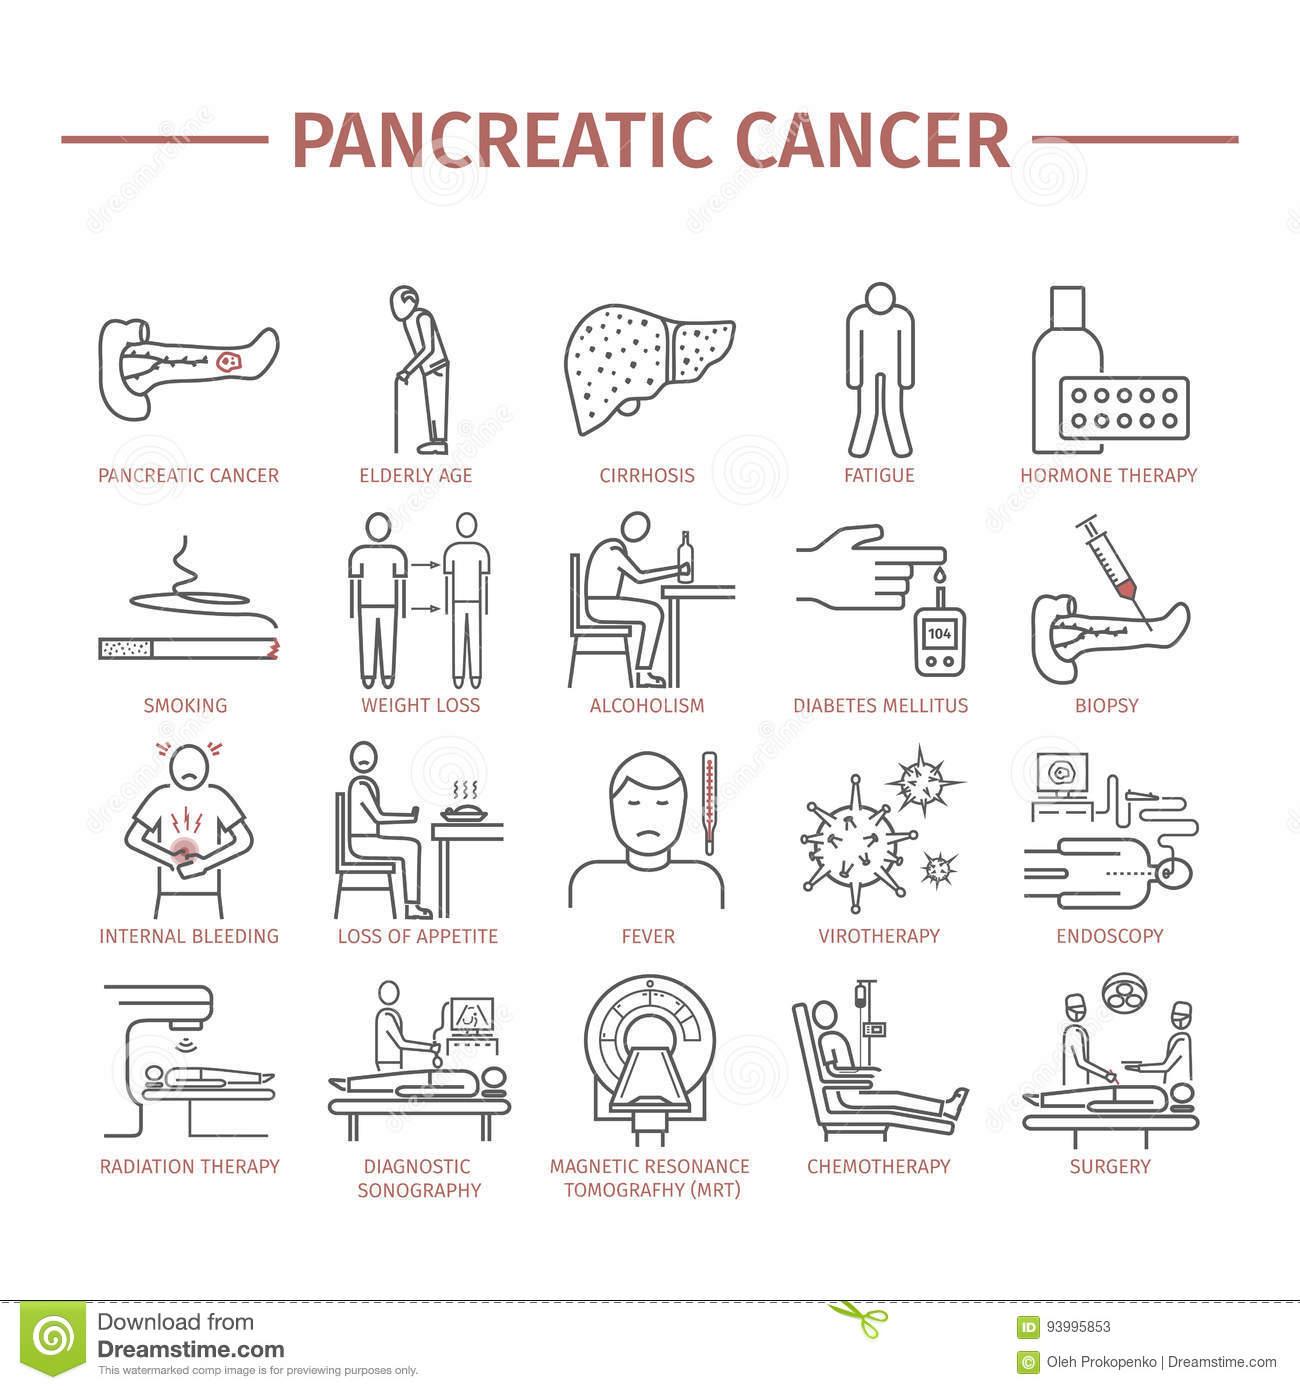 Pancreatic cancer curable